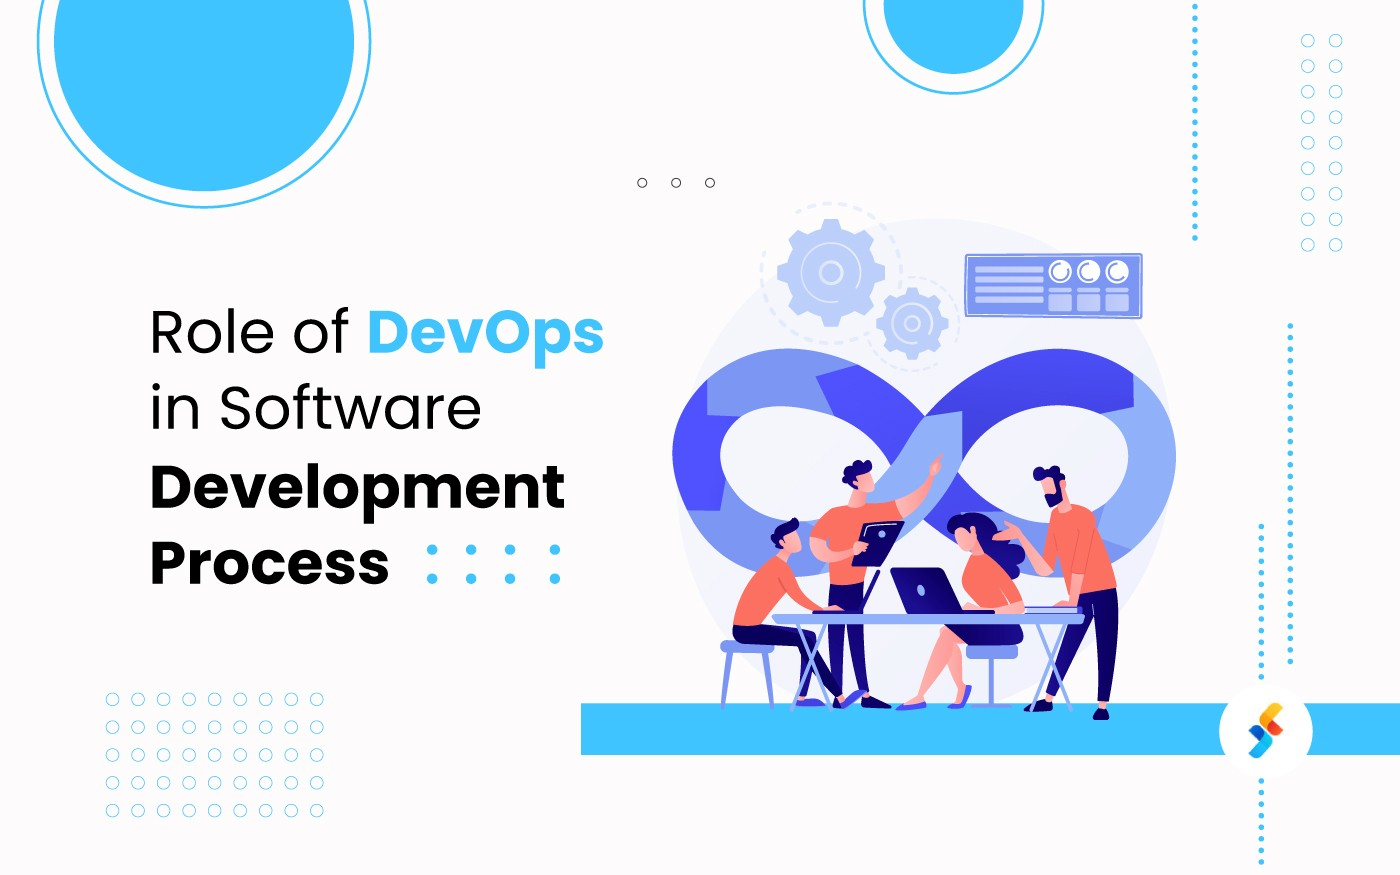 Role of DevOps in Software Development Process